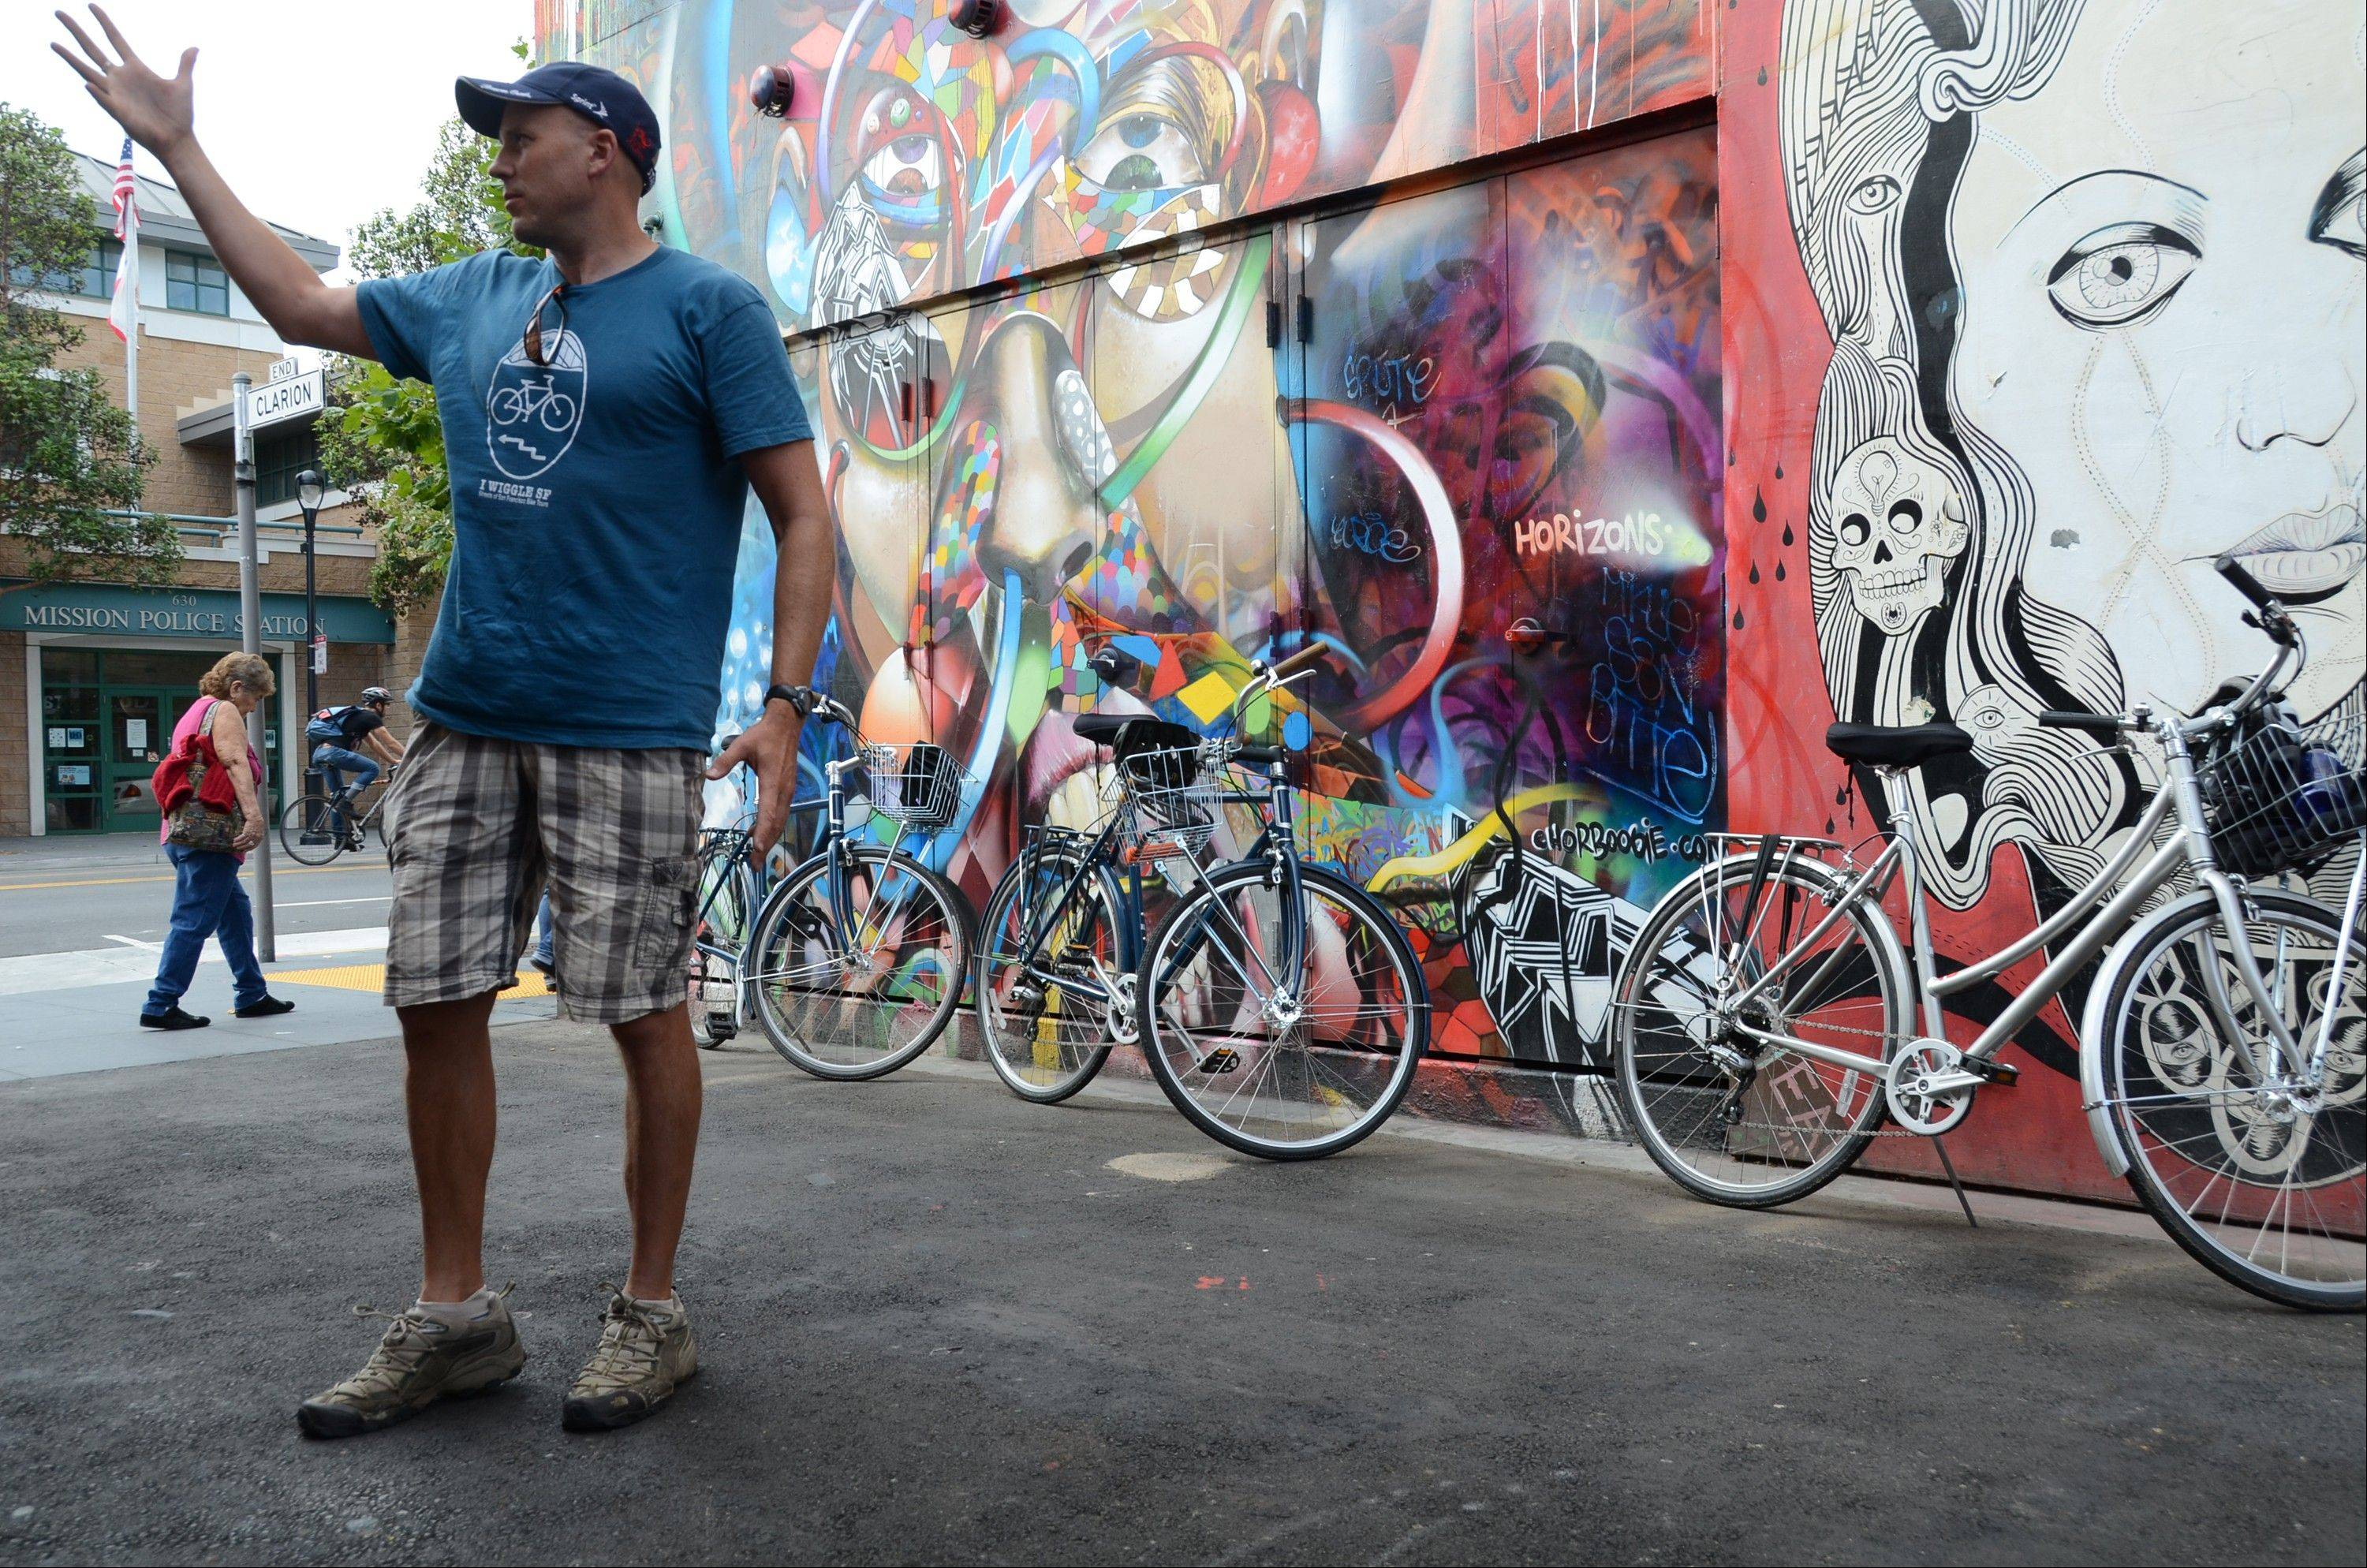 Streets of San Francisco Bike Tours guide and co-founder Eoin Canny explains the history of mural art in the Mission District during a tour in San Francisco.